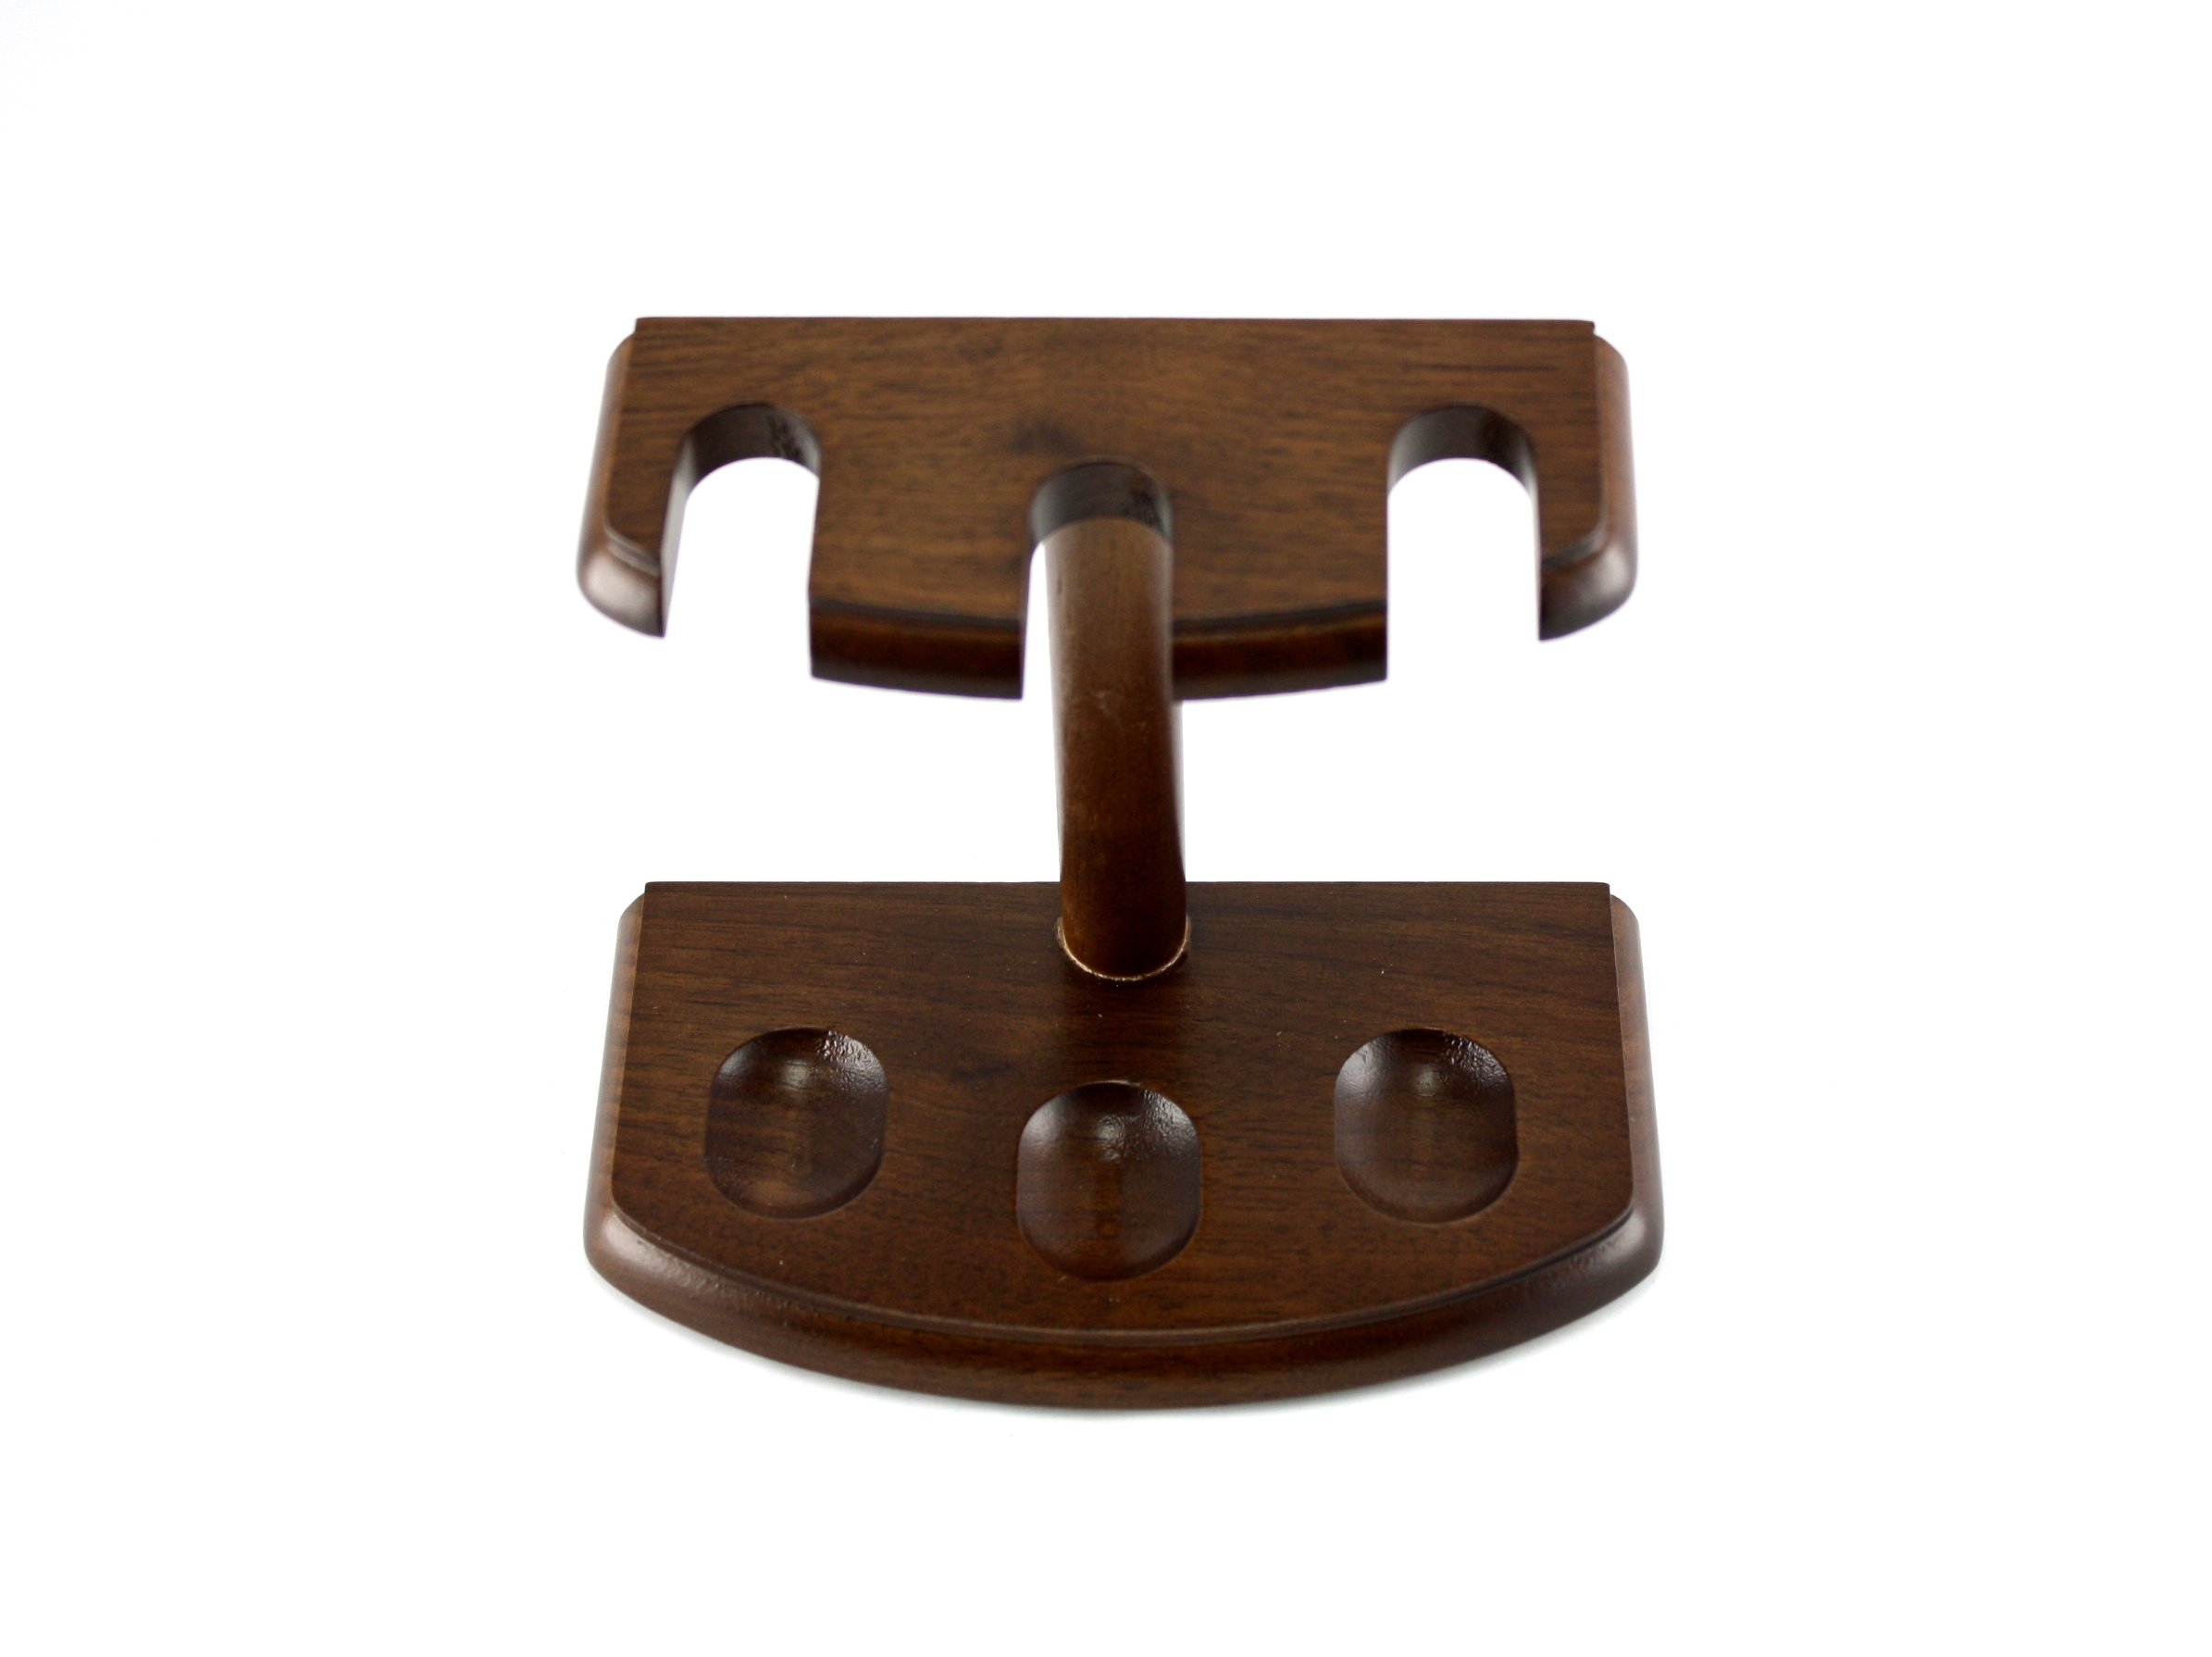 Skyway 3 Pipe Wood Tobacco Pipe Stand Rack Holder - Dark Brown by Skyway Products